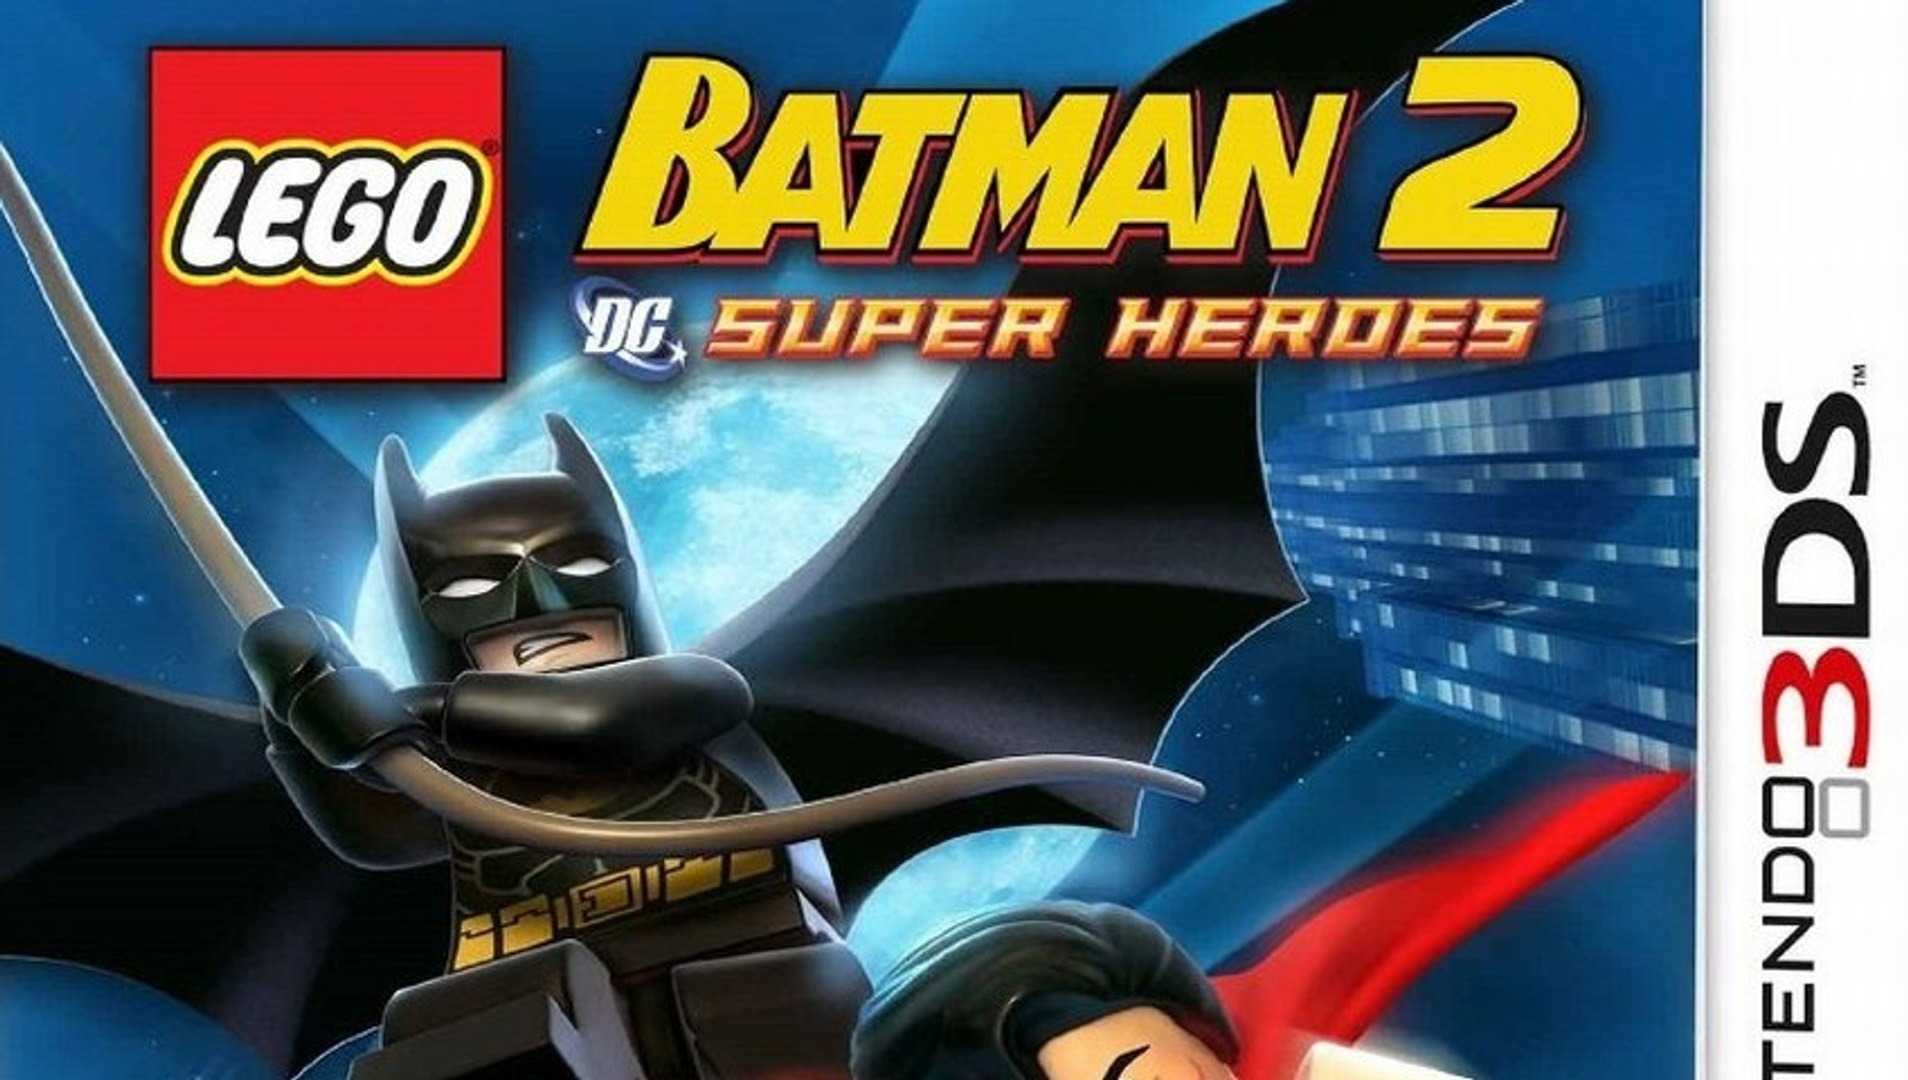 Lego Batman 2 Dc Super Heroes Gameplay Nintendo 3ds 60 Fps 1080p Video Dailymotion